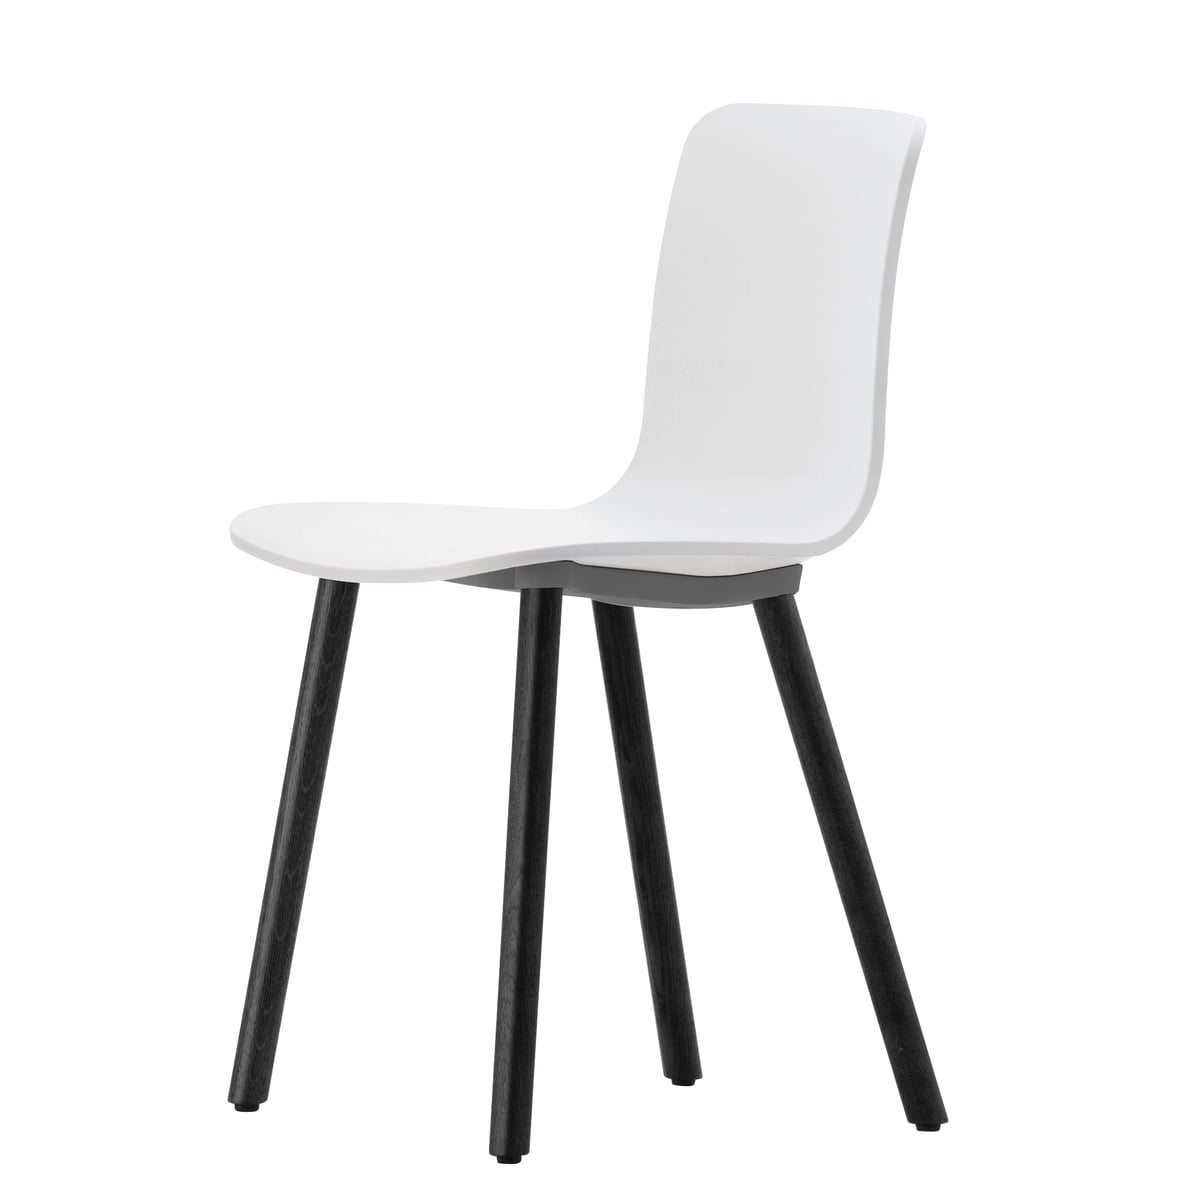 hal wood chair by vitra in the shop. Black Bedroom Furniture Sets. Home Design Ideas